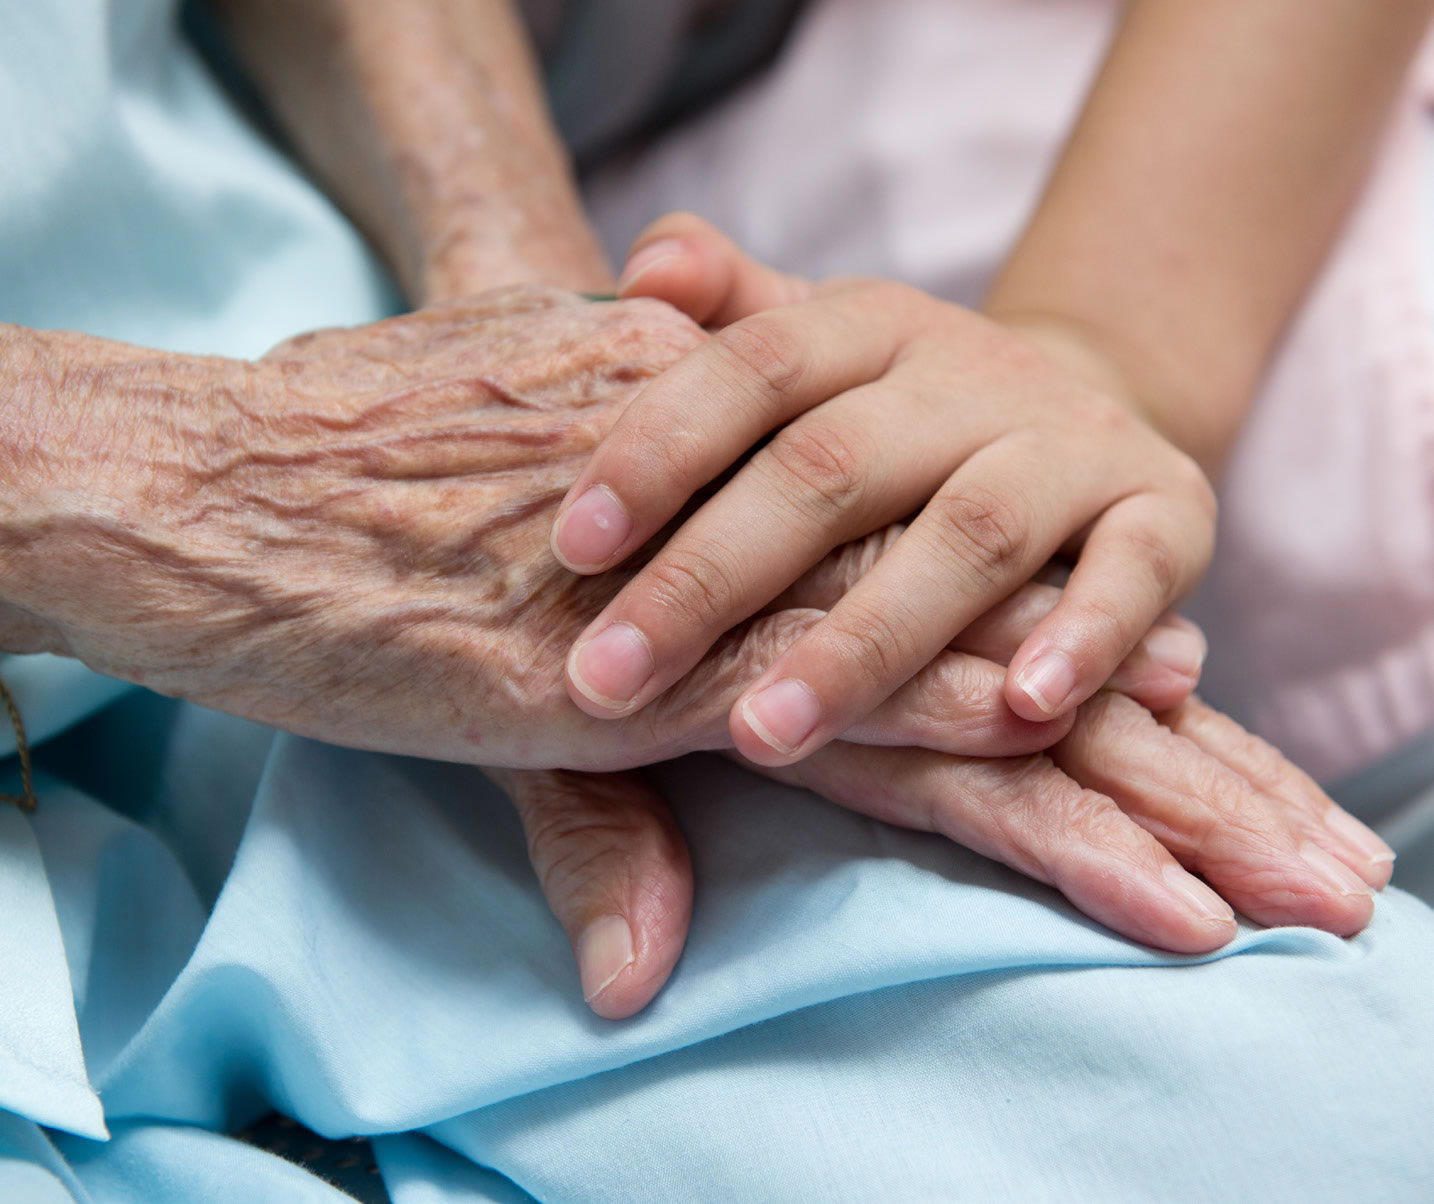 Caring hands - personal care